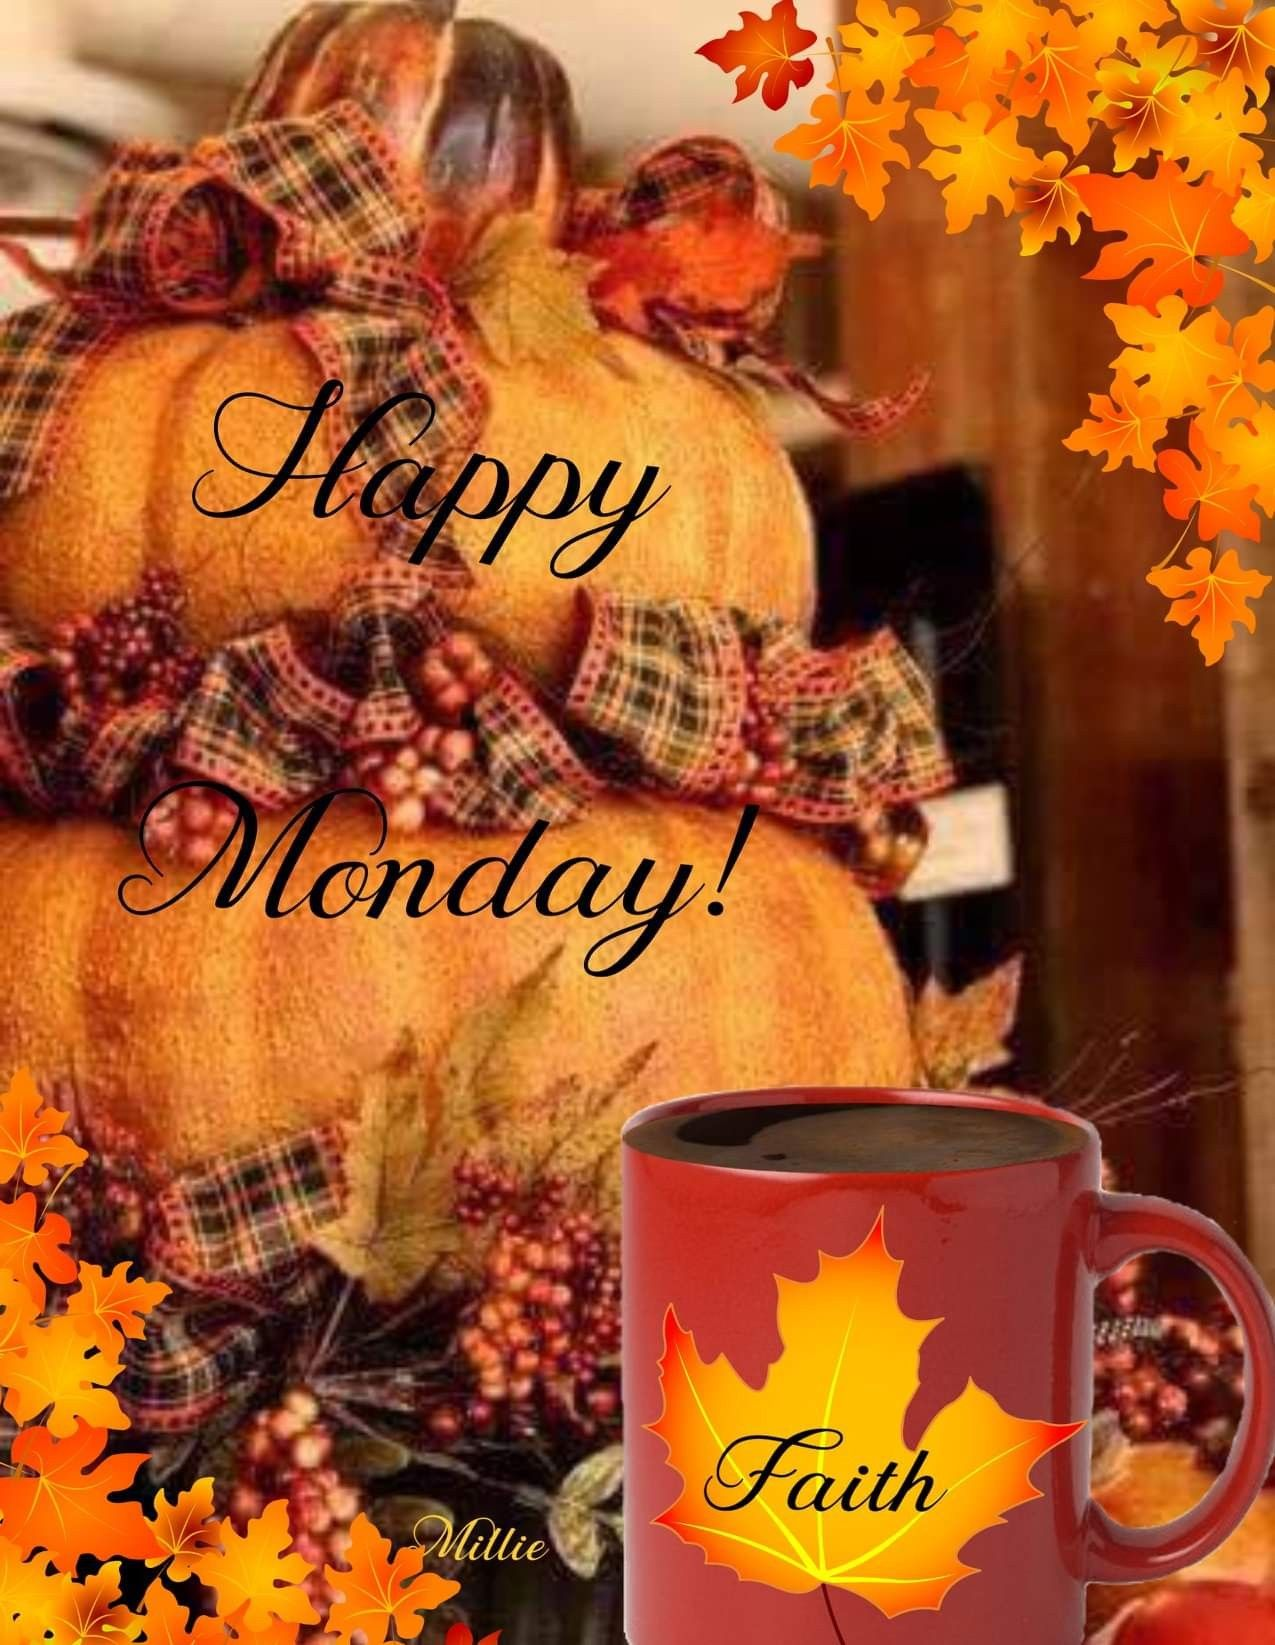 Pin by MaryKay on Hello! Months of the Year and Days of the Week | Monday  morning quotes, Good morning happy monday, Monday greetings